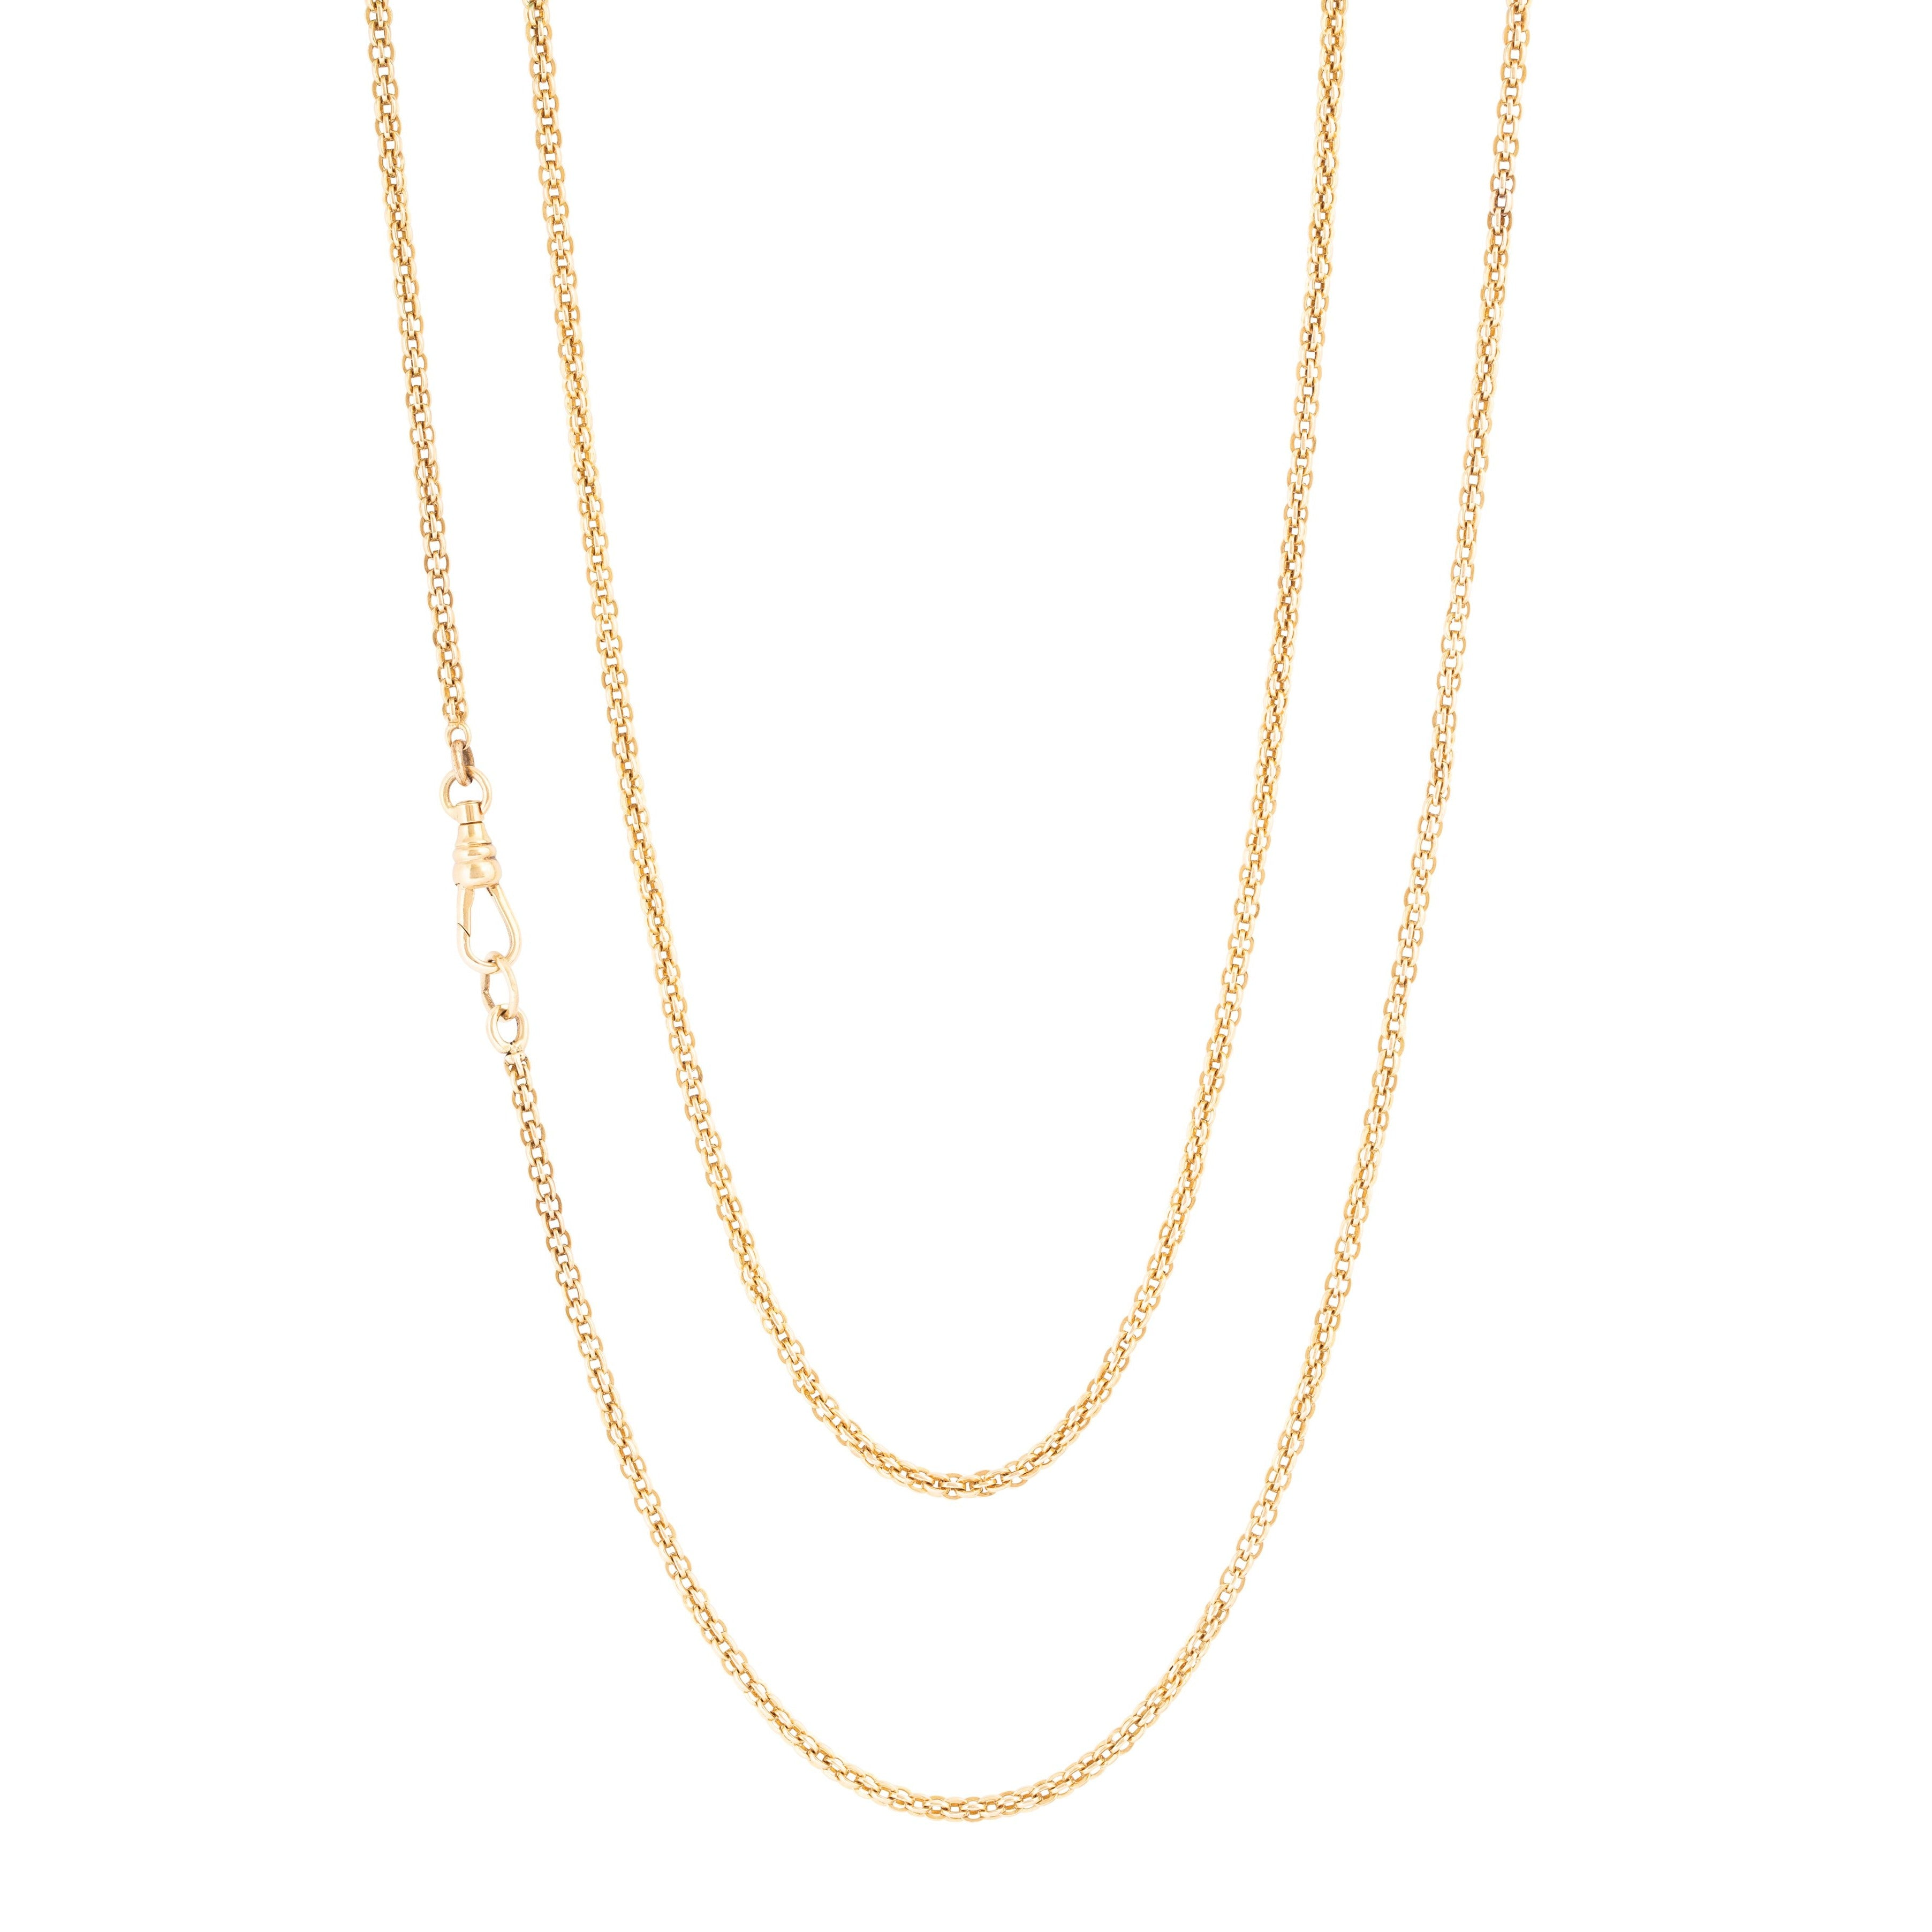 "Long 14k Gold 47"" Chain Necklace"